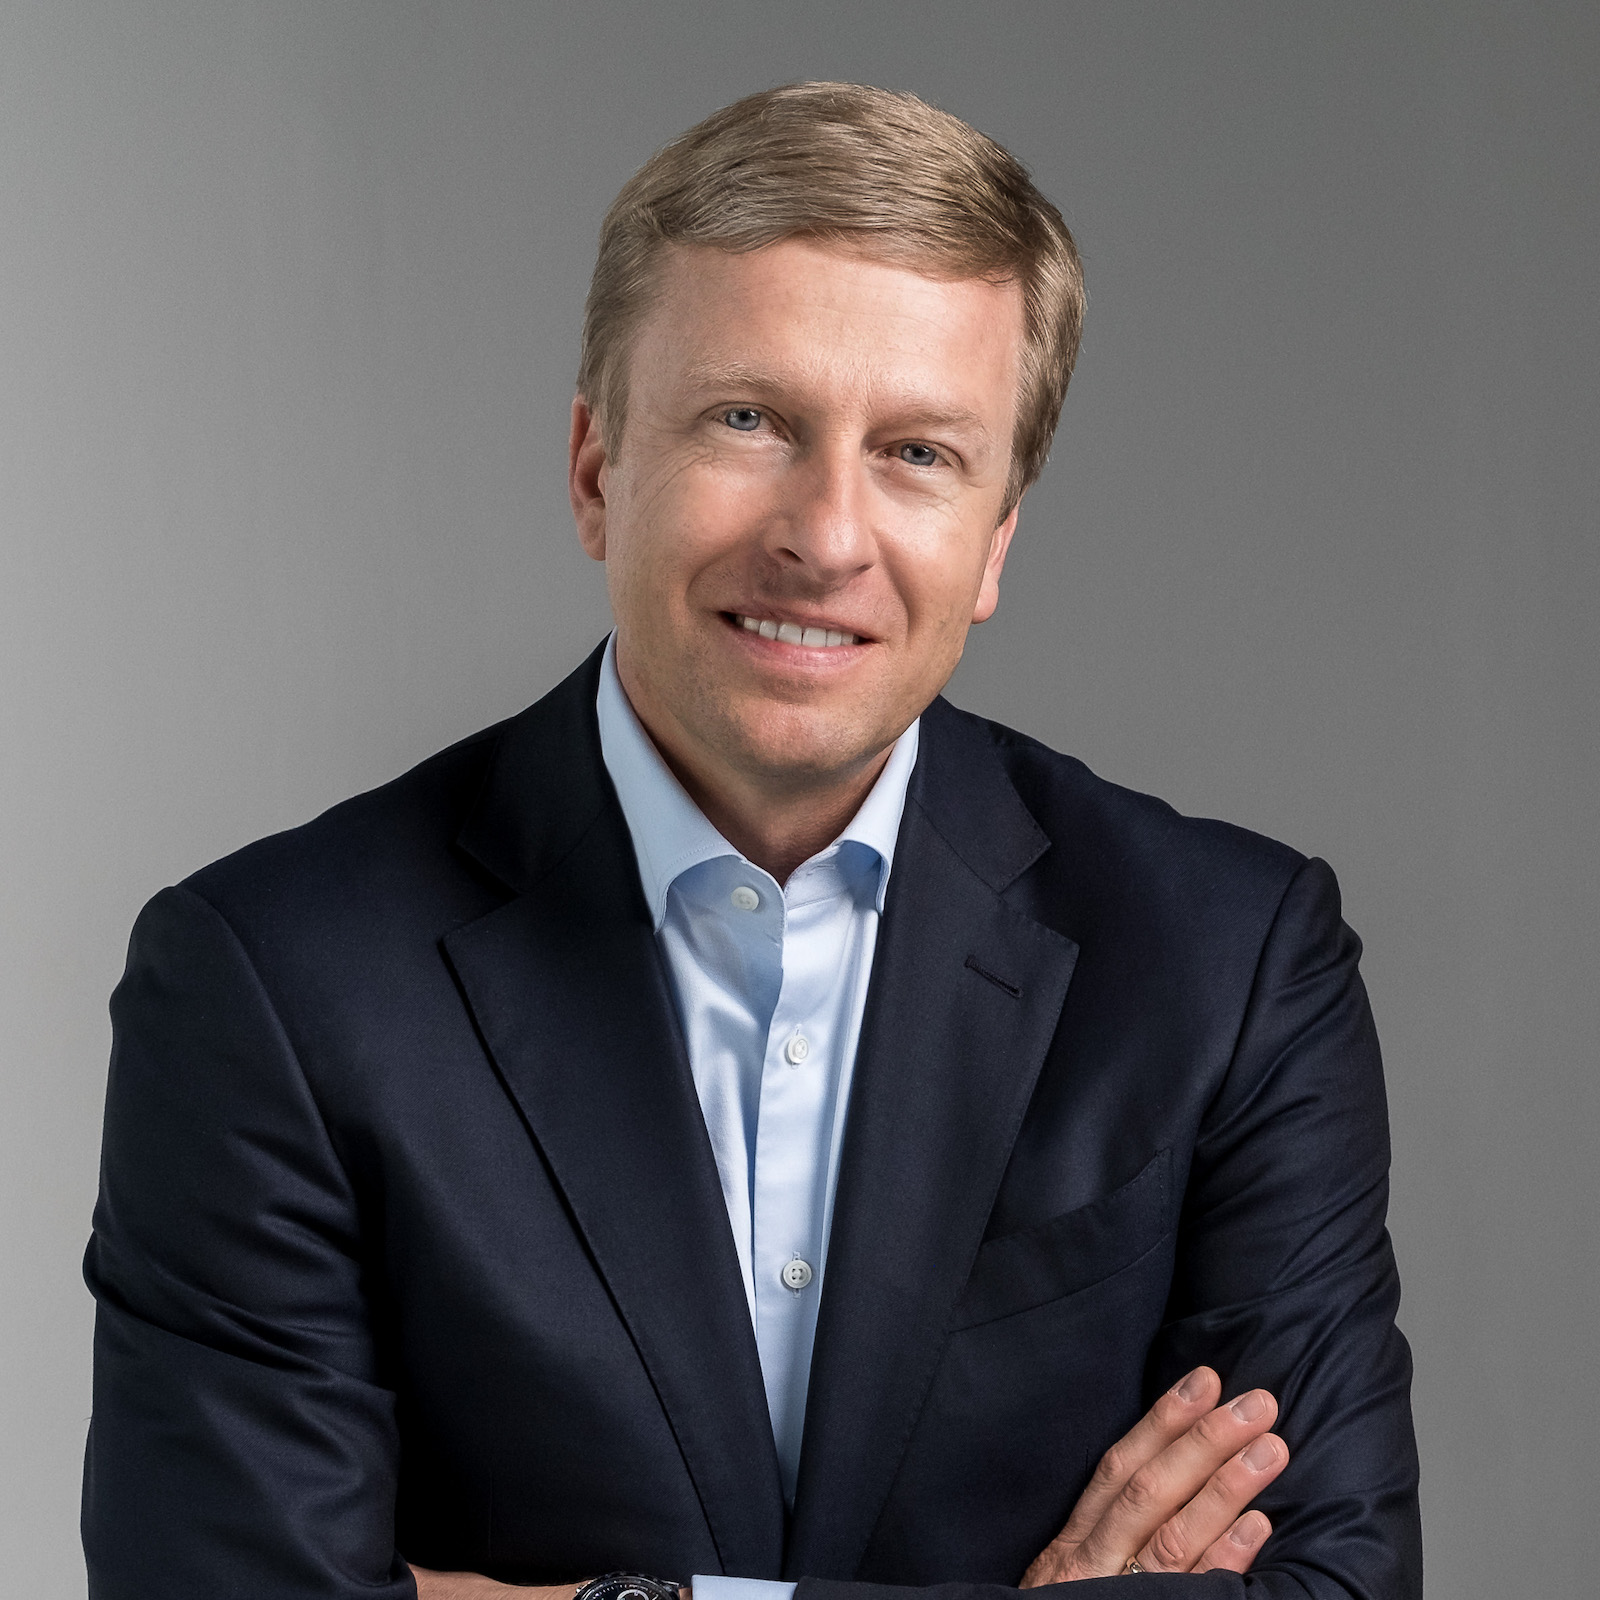 Oliver Zipse Is The New Bmw Ceo Starting August 16 2019